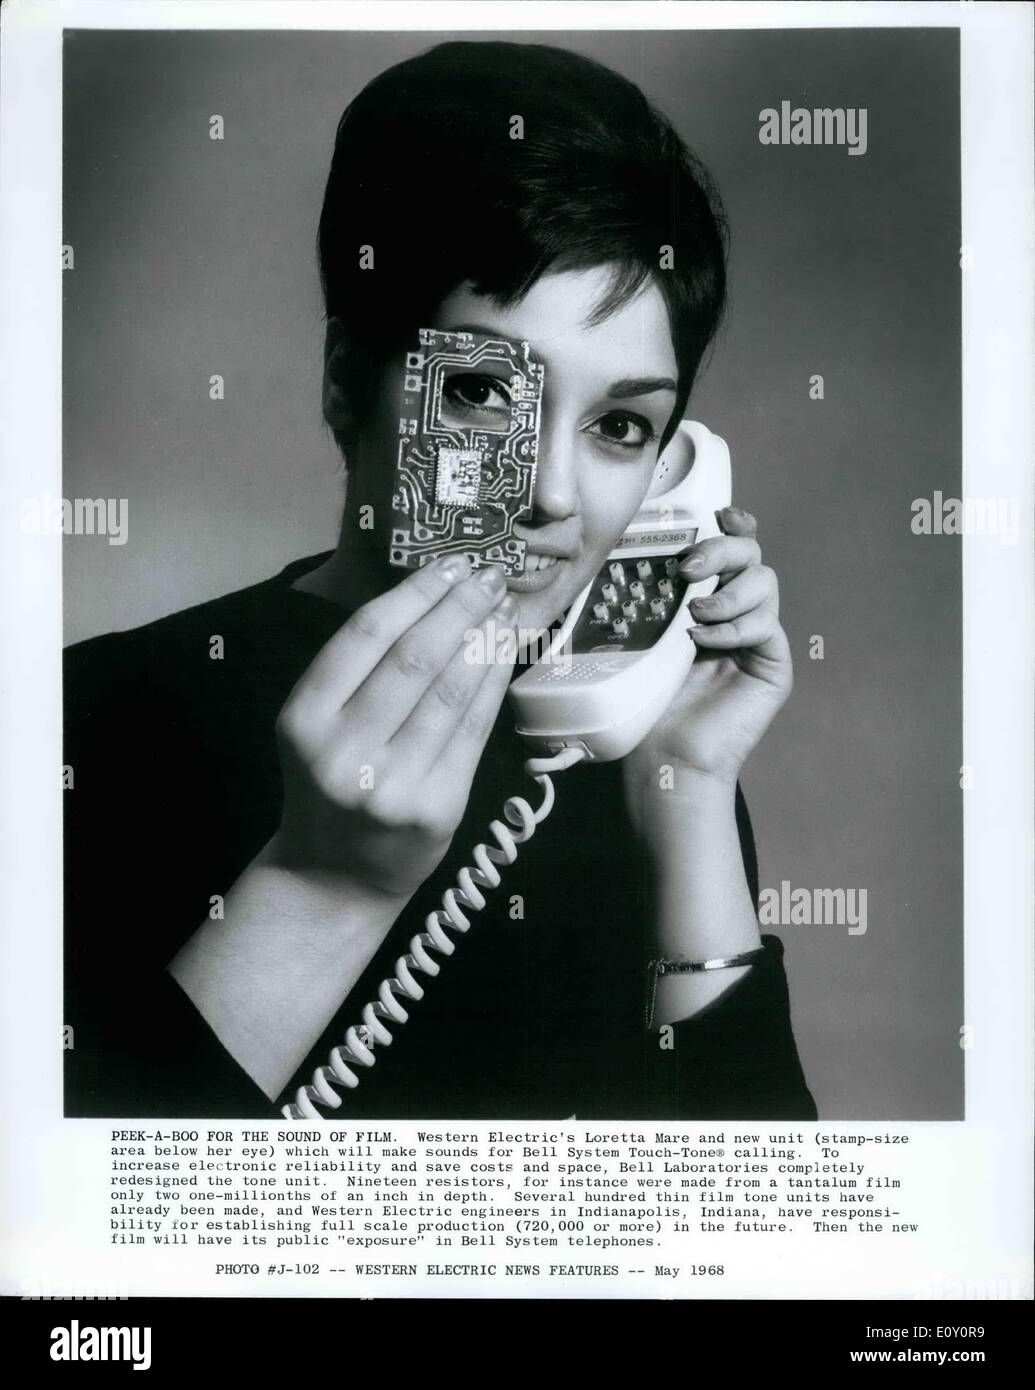 May 05, 1968 - Peek A Boo for the sound of Film. Western Electric's Loretta Mare and new unit (stamp size area below her eye) which will make sounds for Bell System Touch Tones calling. to increase electronic reliability and save costs and space, Bell Laboratories redesigned the tone unit. Nineteen resistors, for instance were made from a tantalum film only two one millionth of an inch in depth - Stock Image